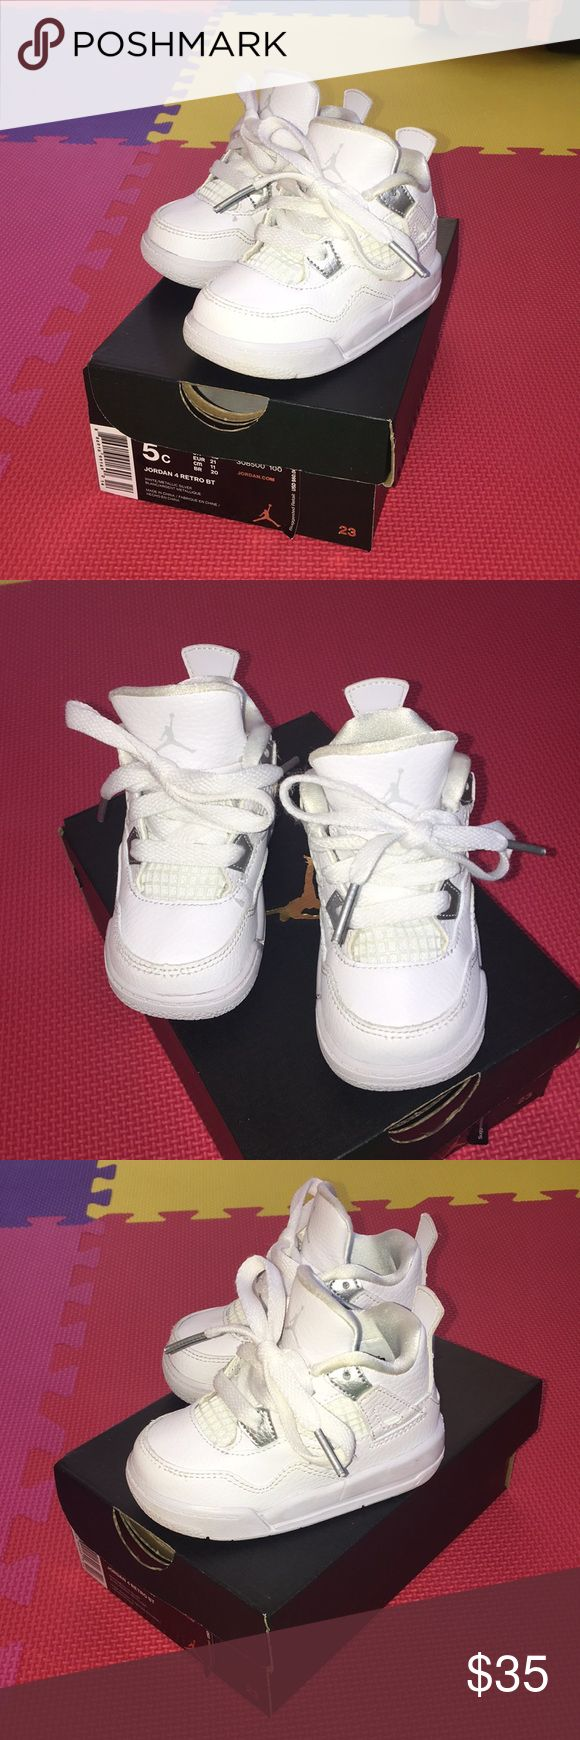 Toddler JORDAN 4 RETRO BT w/box - gently used - size 5 - lace up closure - rubber sole Jordan Shoes Sneakers